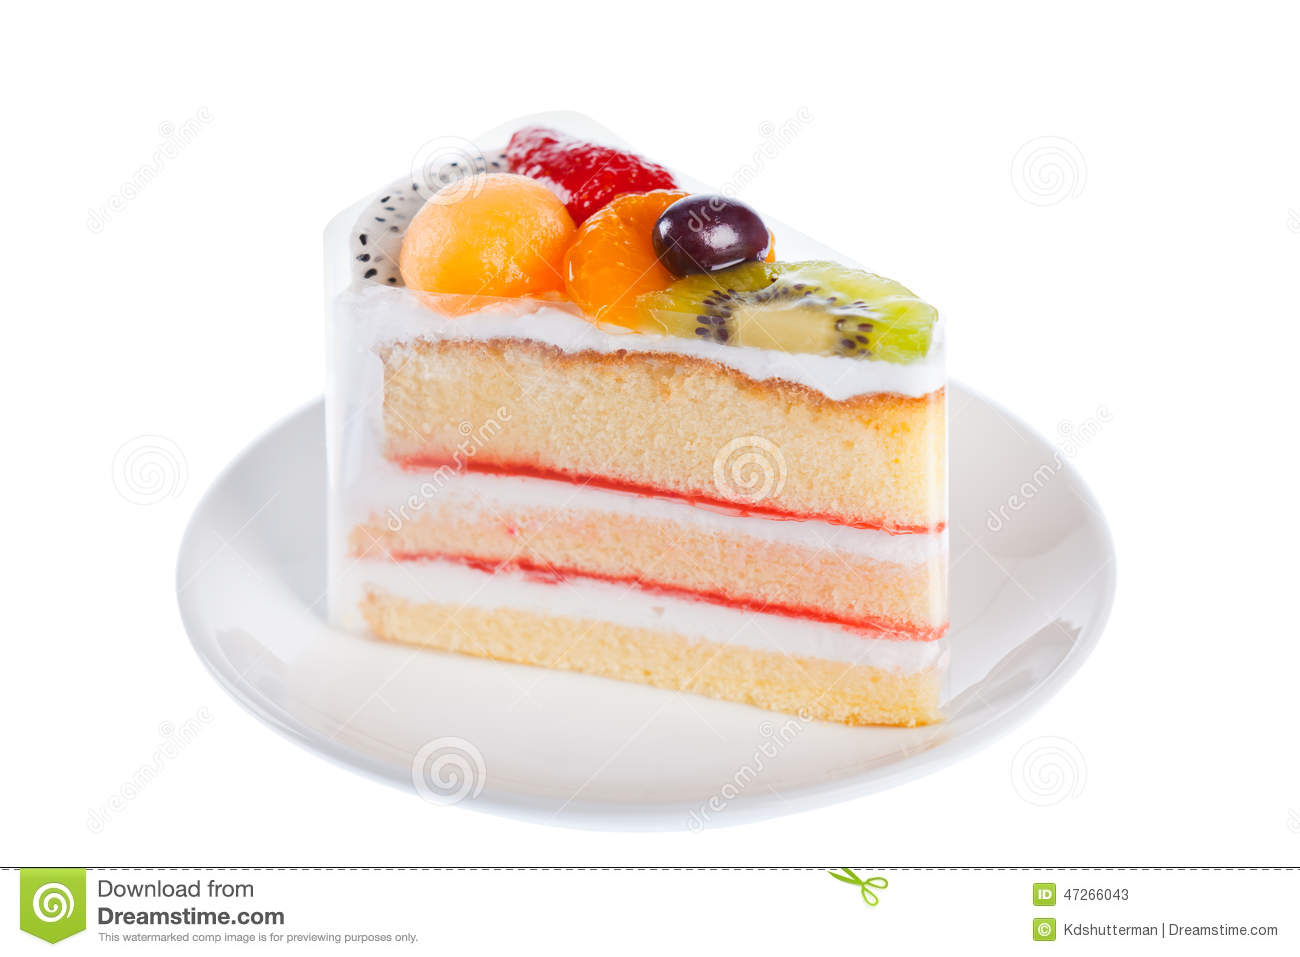 Cake With Fruits On Top : Fruit Cake Stock Photo - Image: 47266043